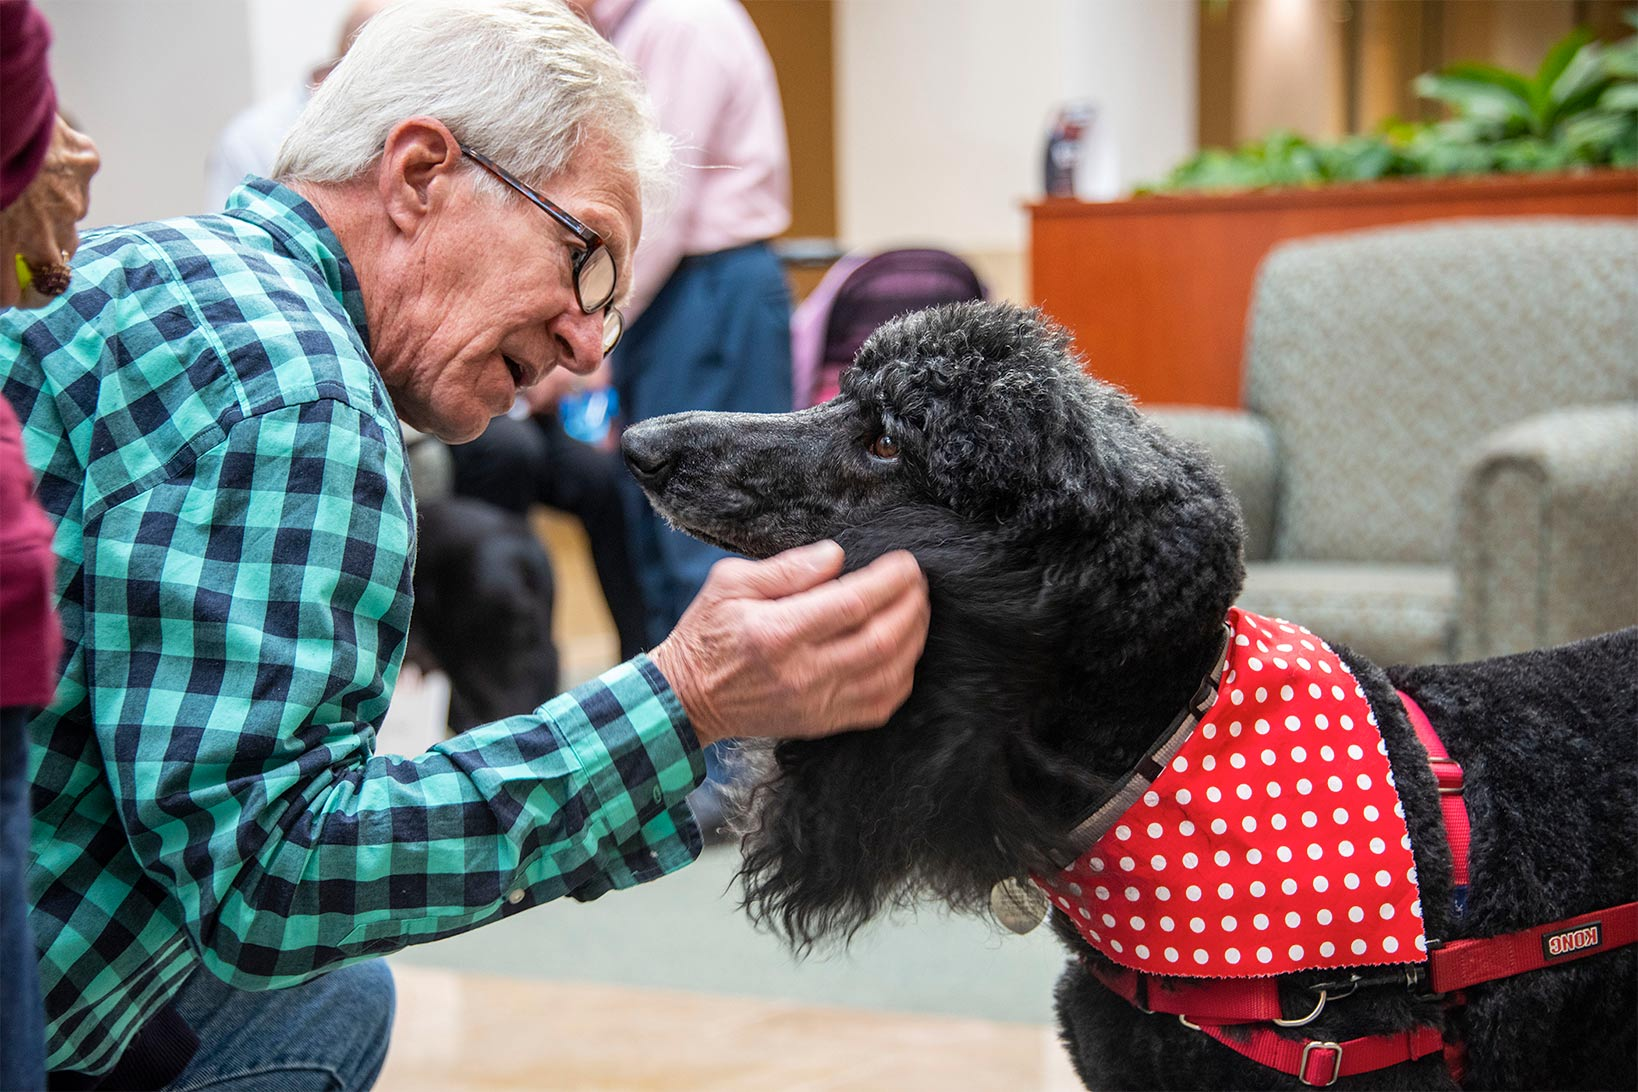 An Elderly Man Bending down to gently scruff the ears of a poodle in a red harness and red and white polkadot bandana.